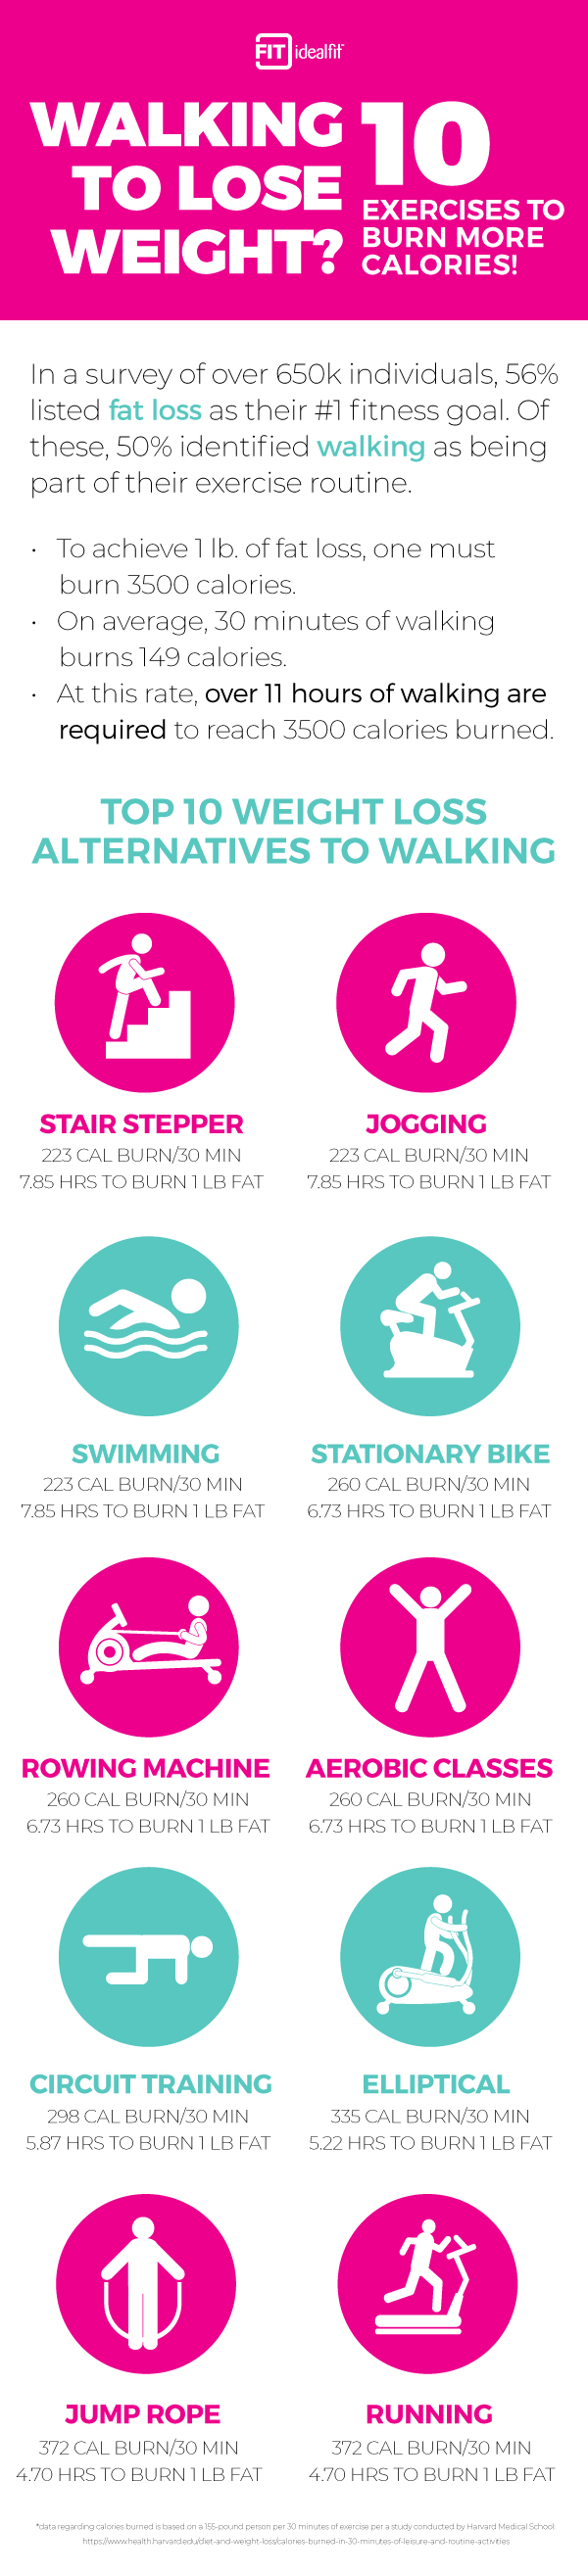 An infographic showing the calories burned of different activities